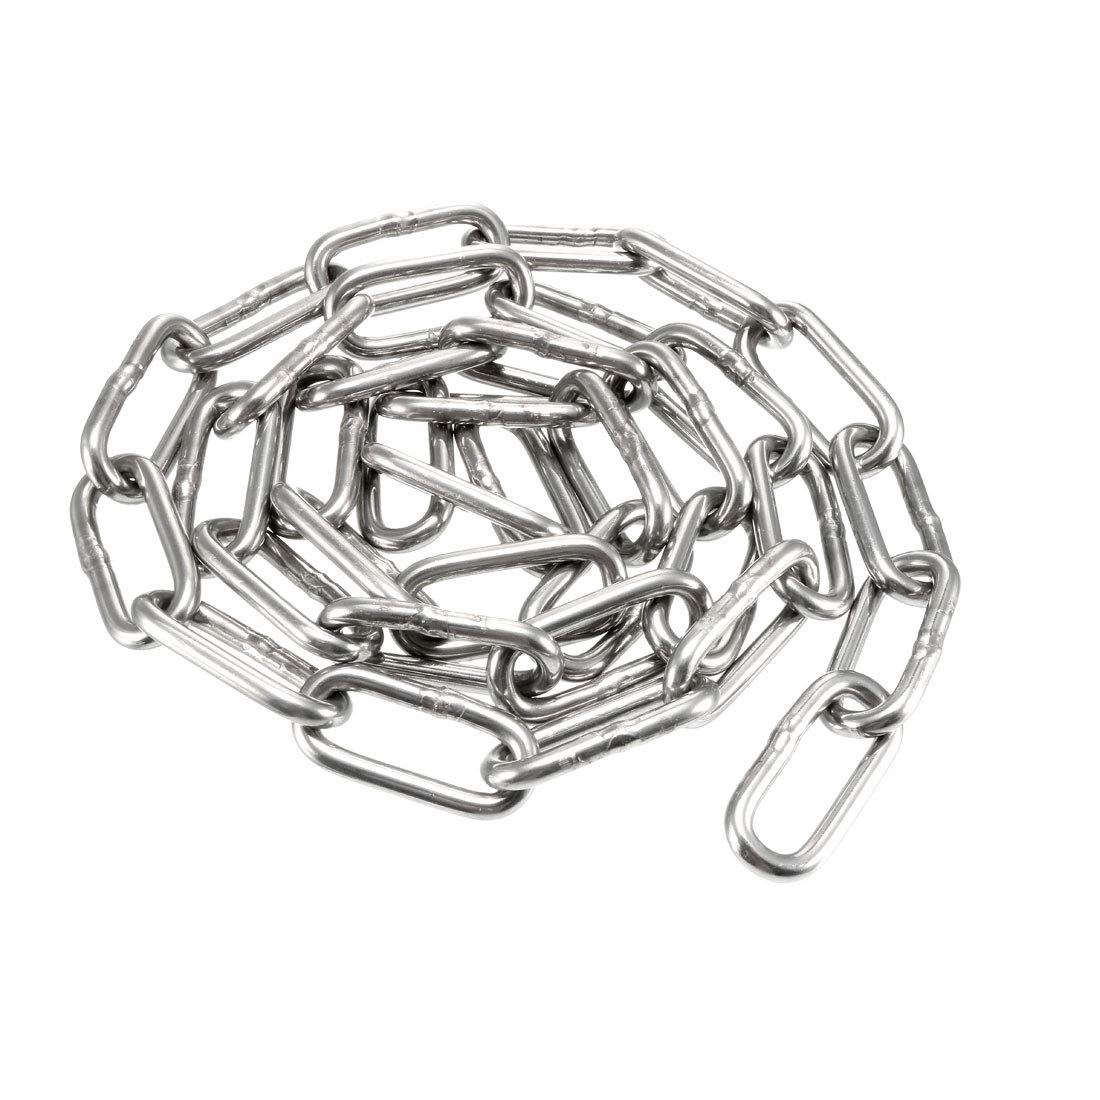 uxcell® Stainless Steel 304 Hardened Proof Coil Chain 1.5m Length 4mm Thickness Zinc Plated